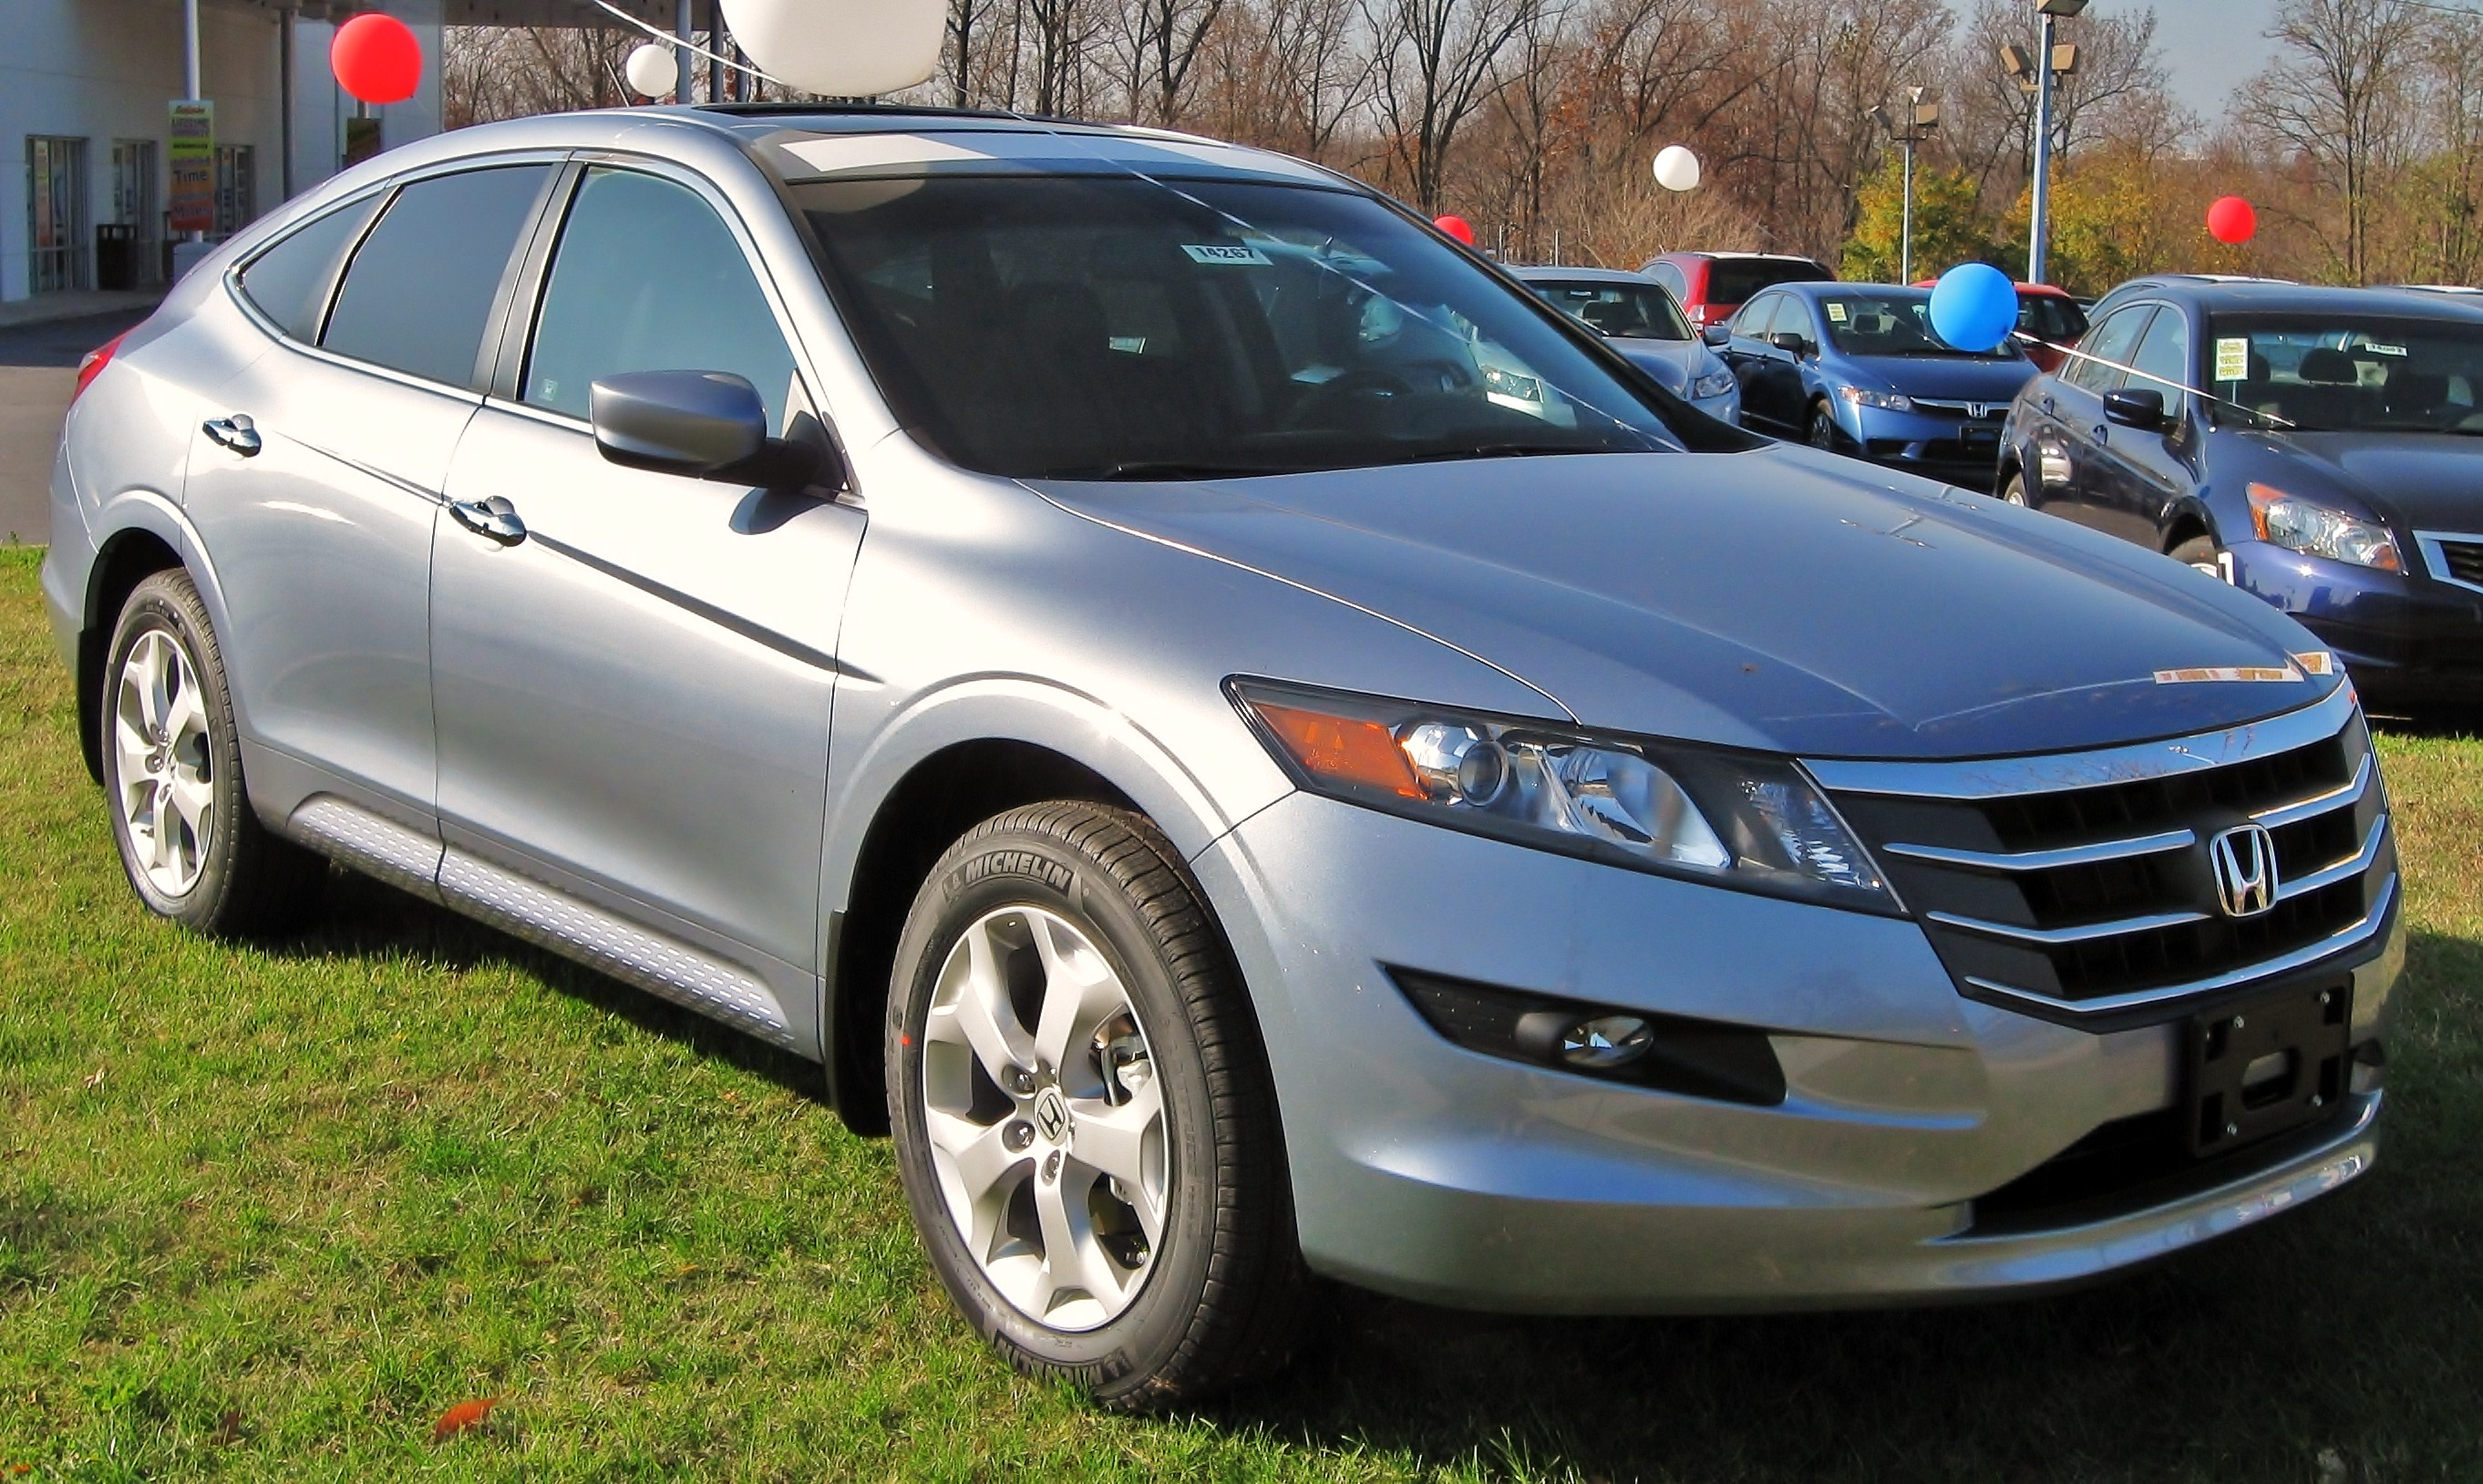 sedan honda photos and price auto roadshow review more ratings used preview crosstour accord specs